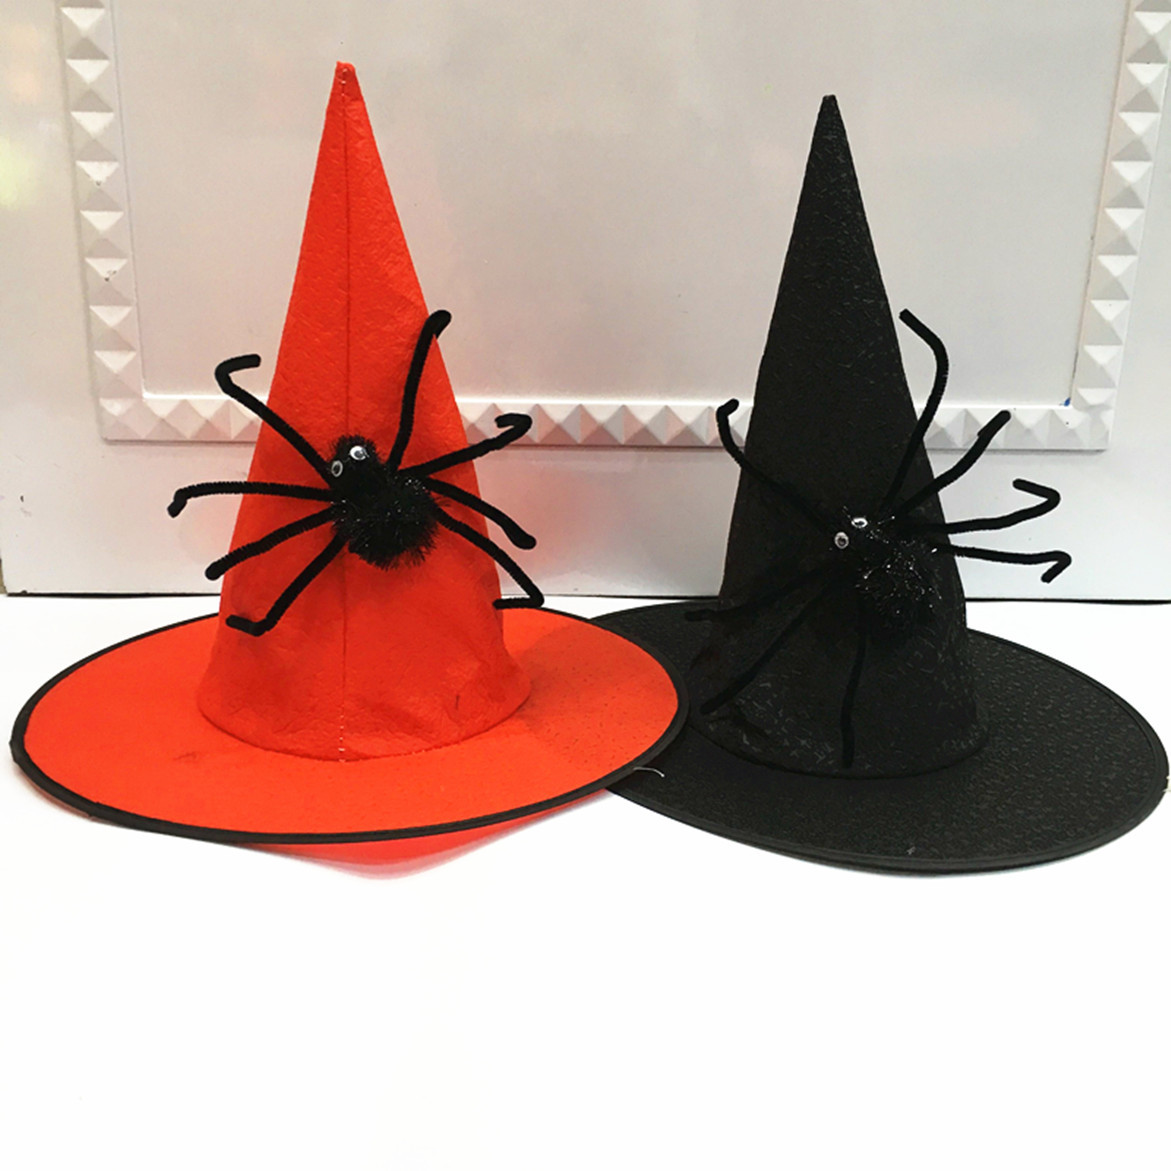 d489d63dc Halloween Costume Party Hat Spider Non-woven Wizard Hat Cosplay Props Witch  Hat - Buy Halloween Props,Halloween Makeup,Halloween Party Decoration ...